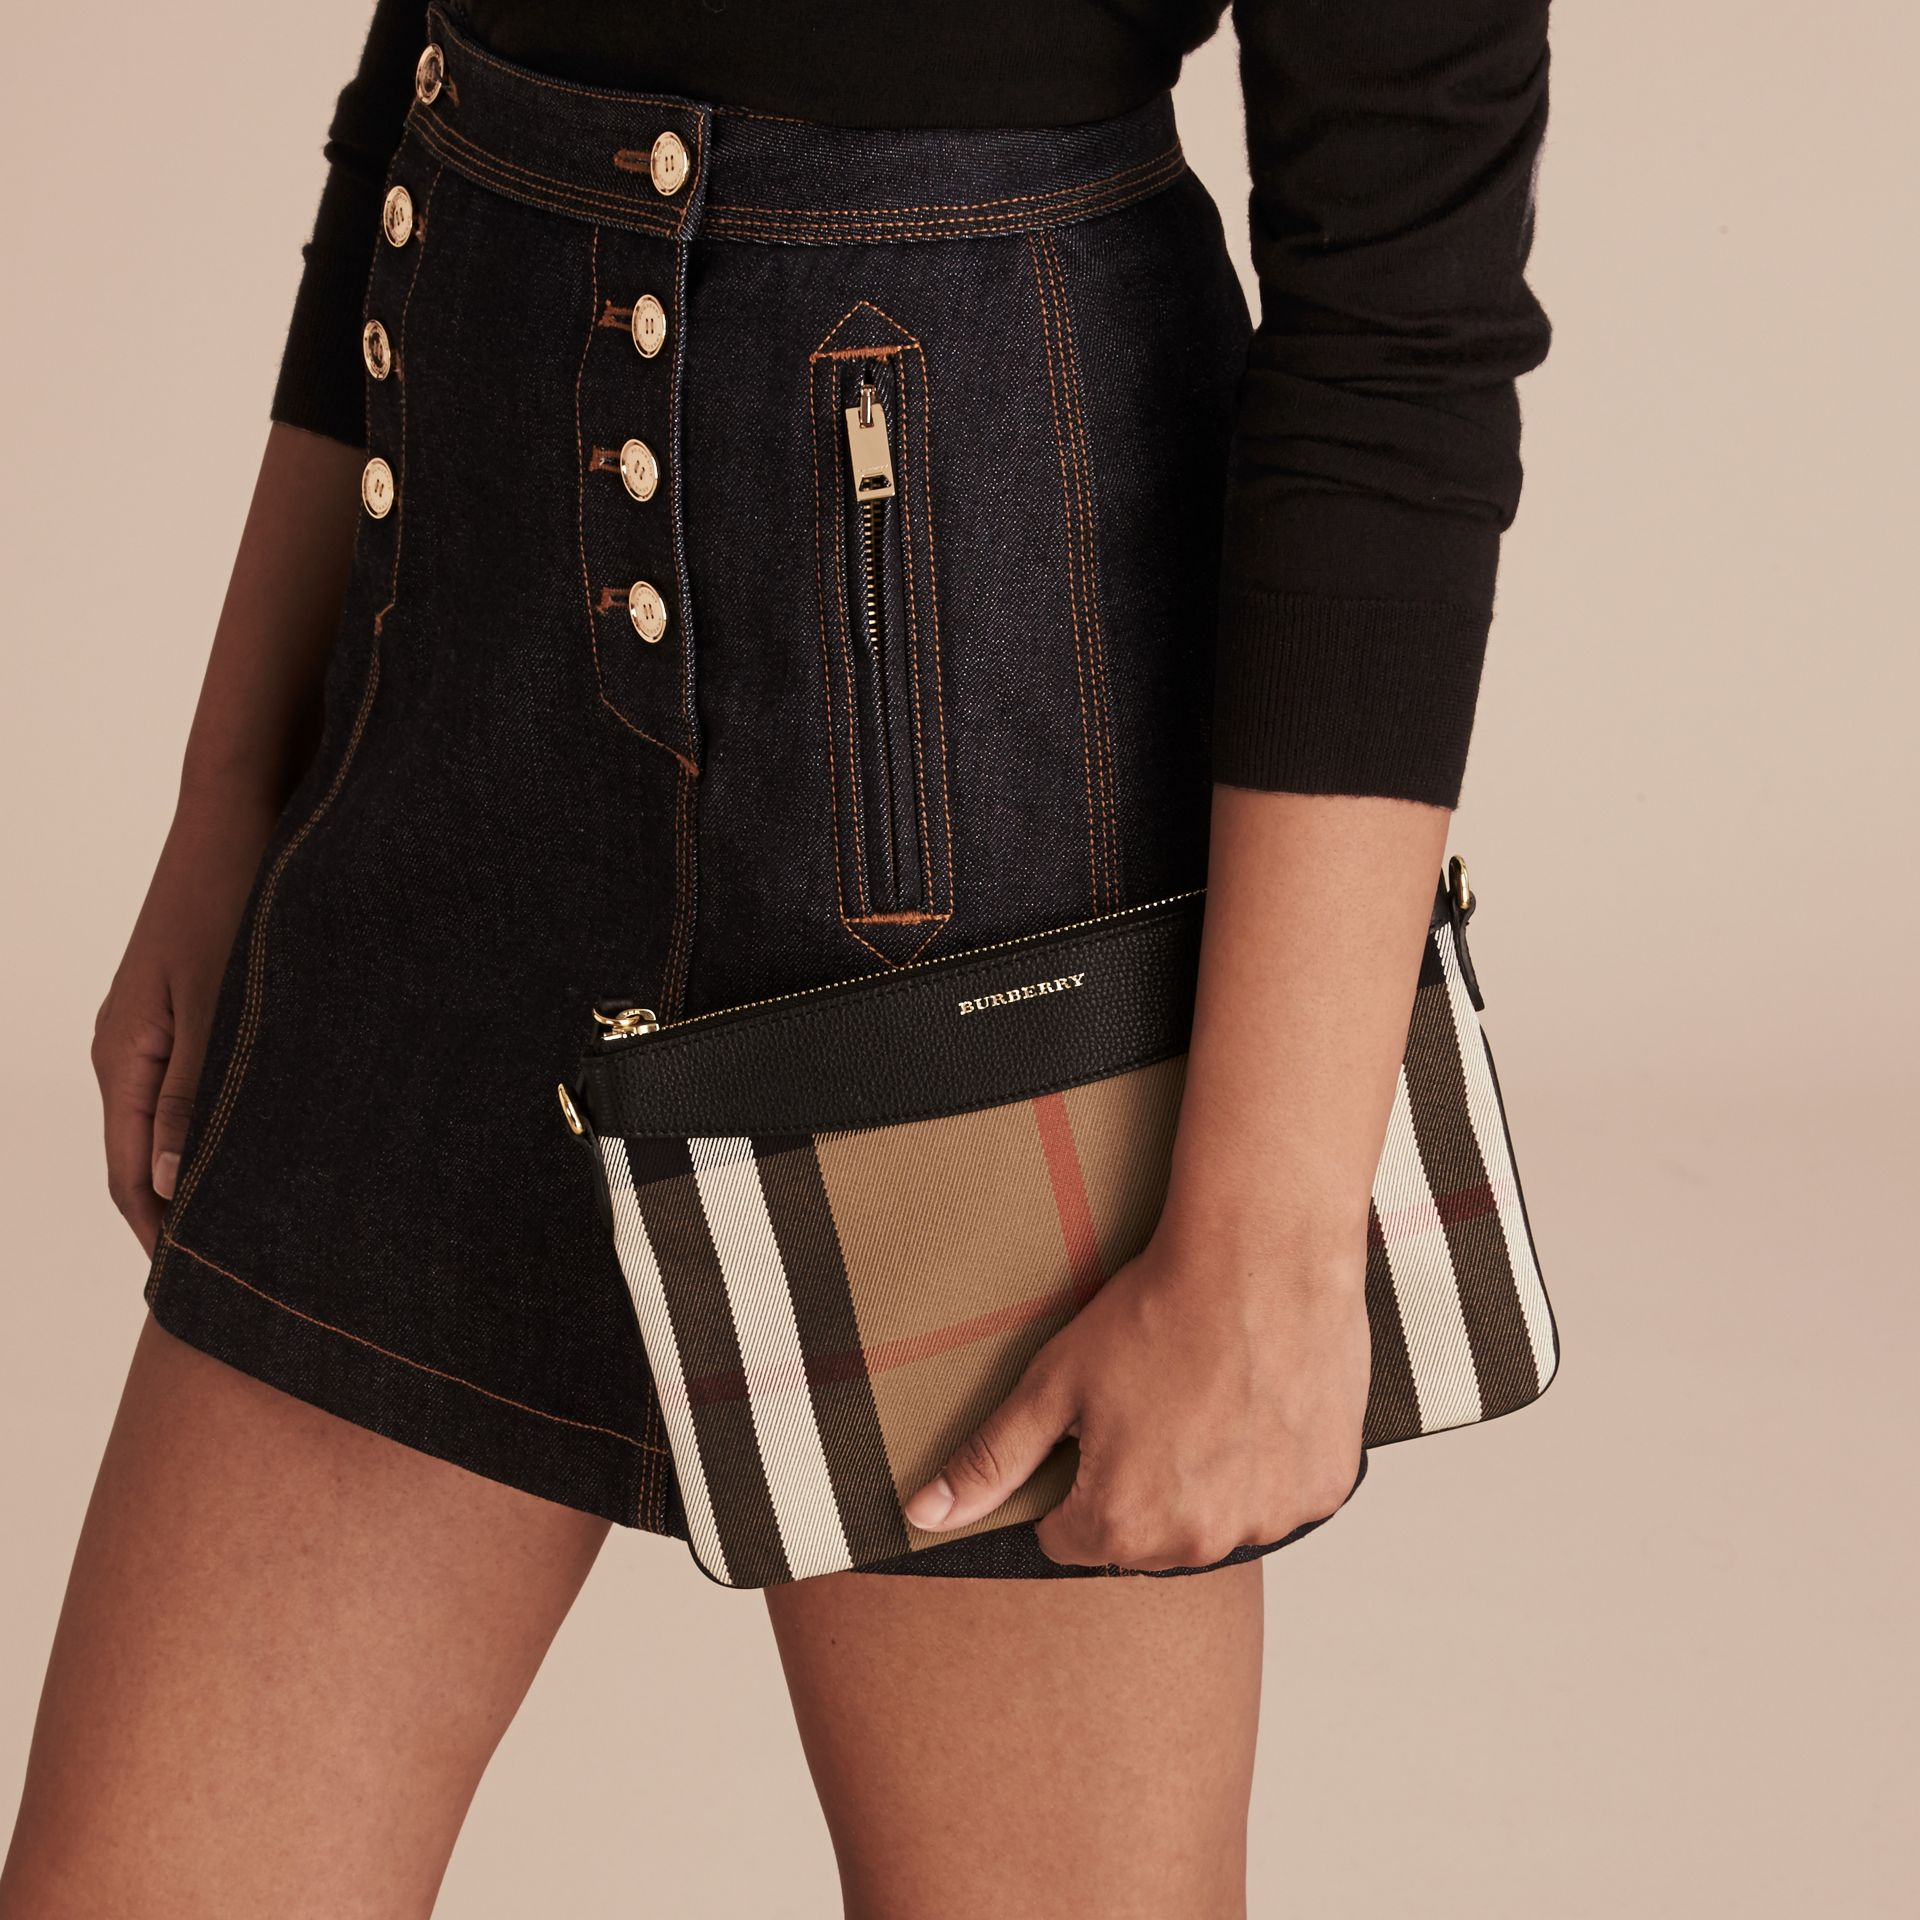 House Check and Leather Clutch Bag in Black - Women | Burberry Singapore - gallery image 5